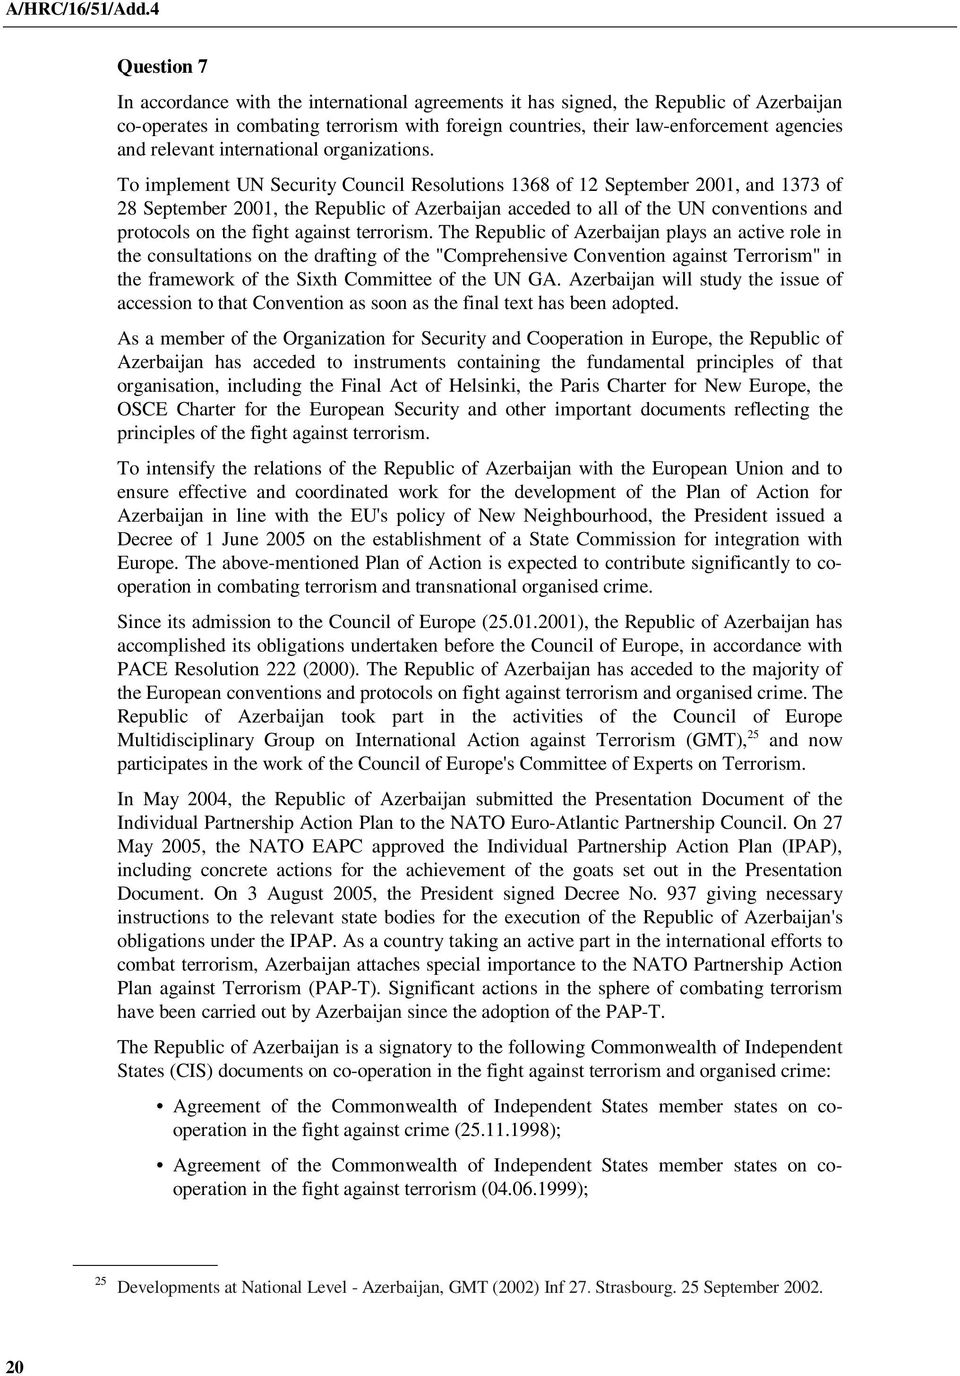 To implement UN Security Council Resolutions 1368 of 12 September 2001, and 1373 of 28 September 2001, the Republic of Azerbaijan acceded to all of the UN conventions and protocols on the fight